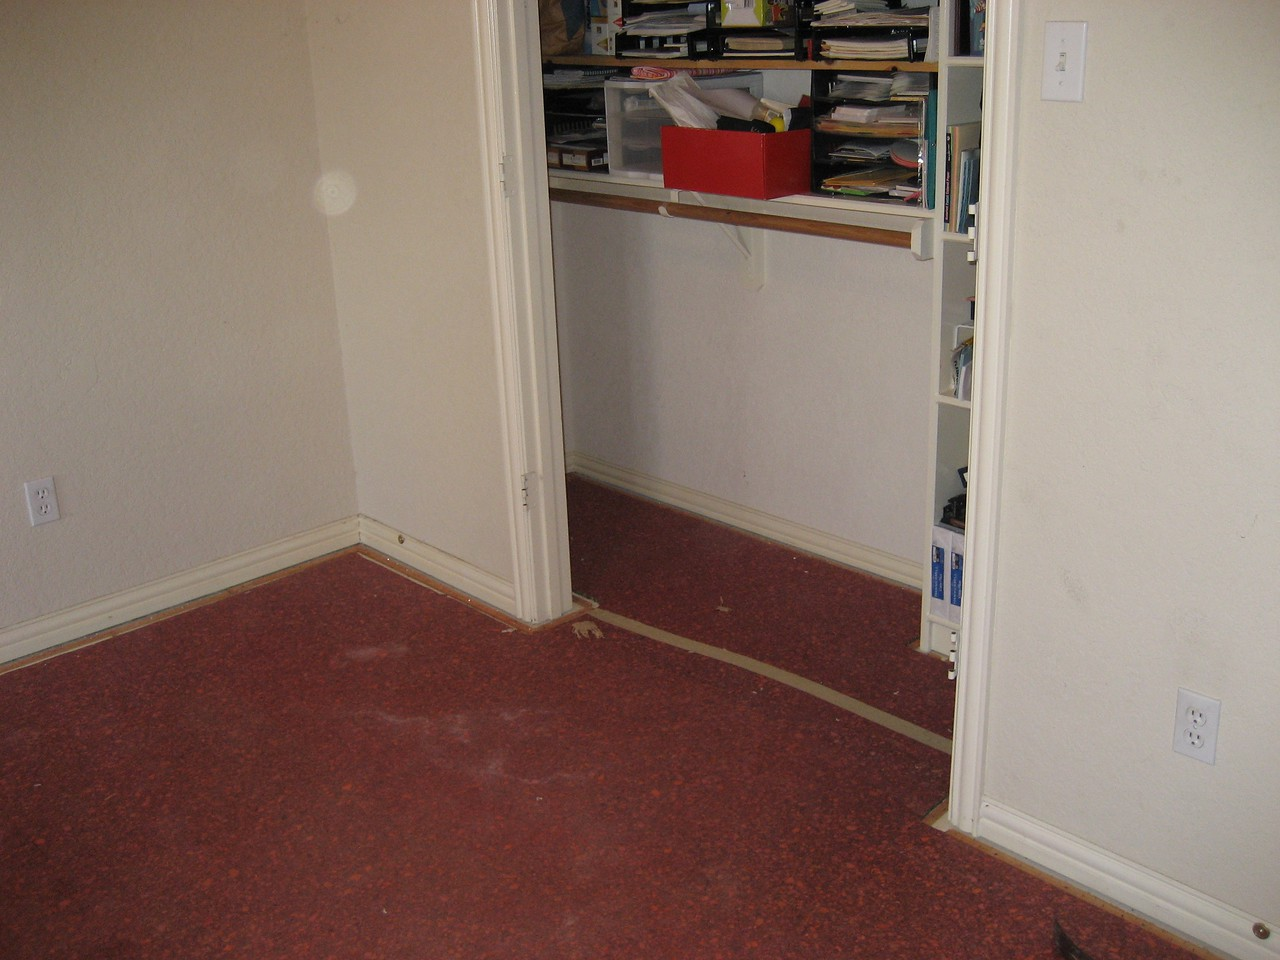 Room with carpet pad.